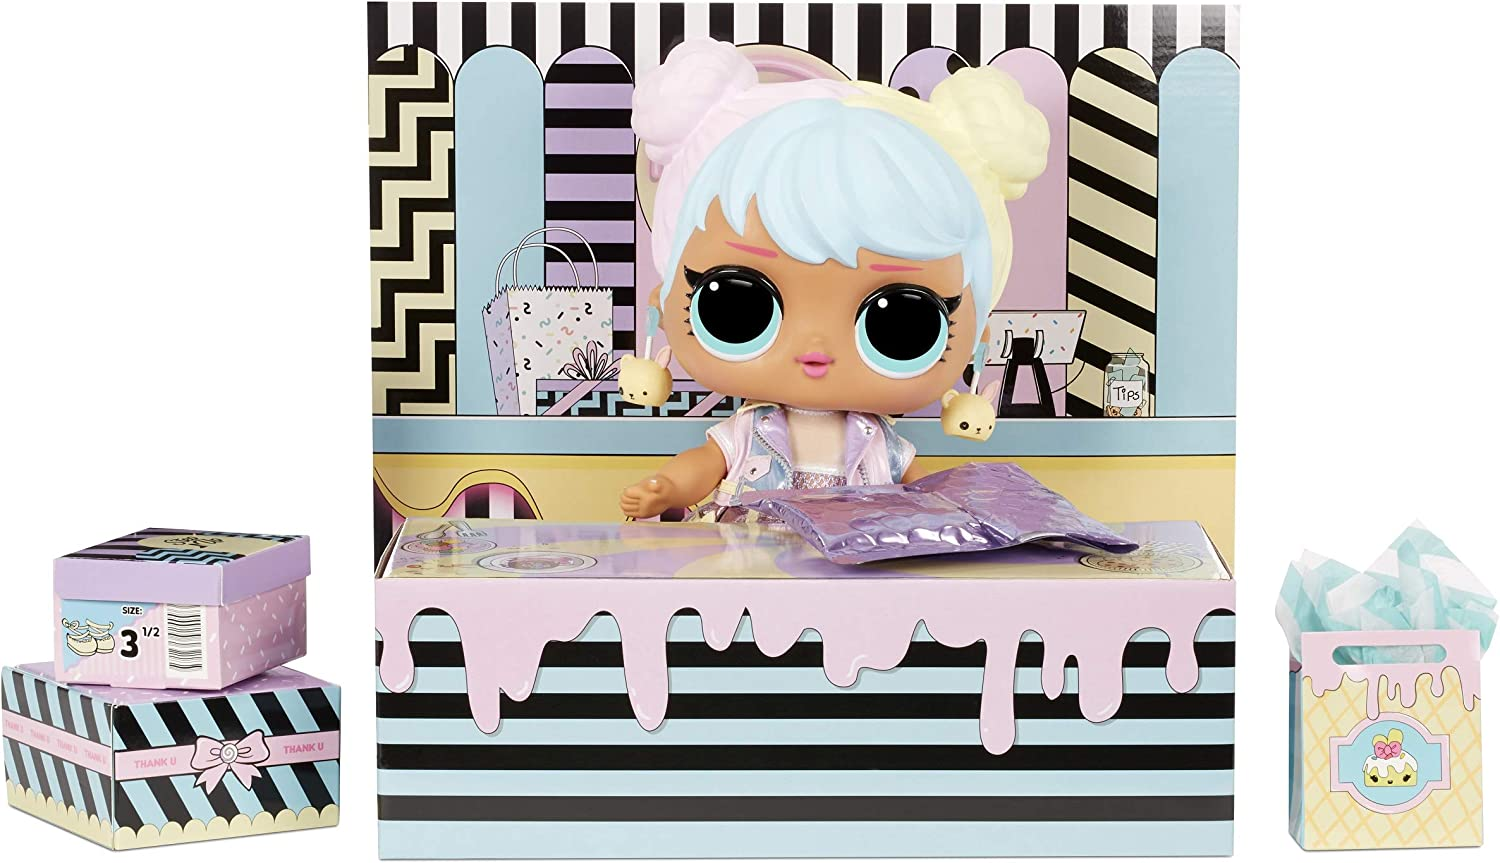 Accessories Big Baby Chair and Backdrop LOL Surprise Big B.B. Shoes Bon Bon Includes Playset Desk 11 Large Doll UNbox Fashions